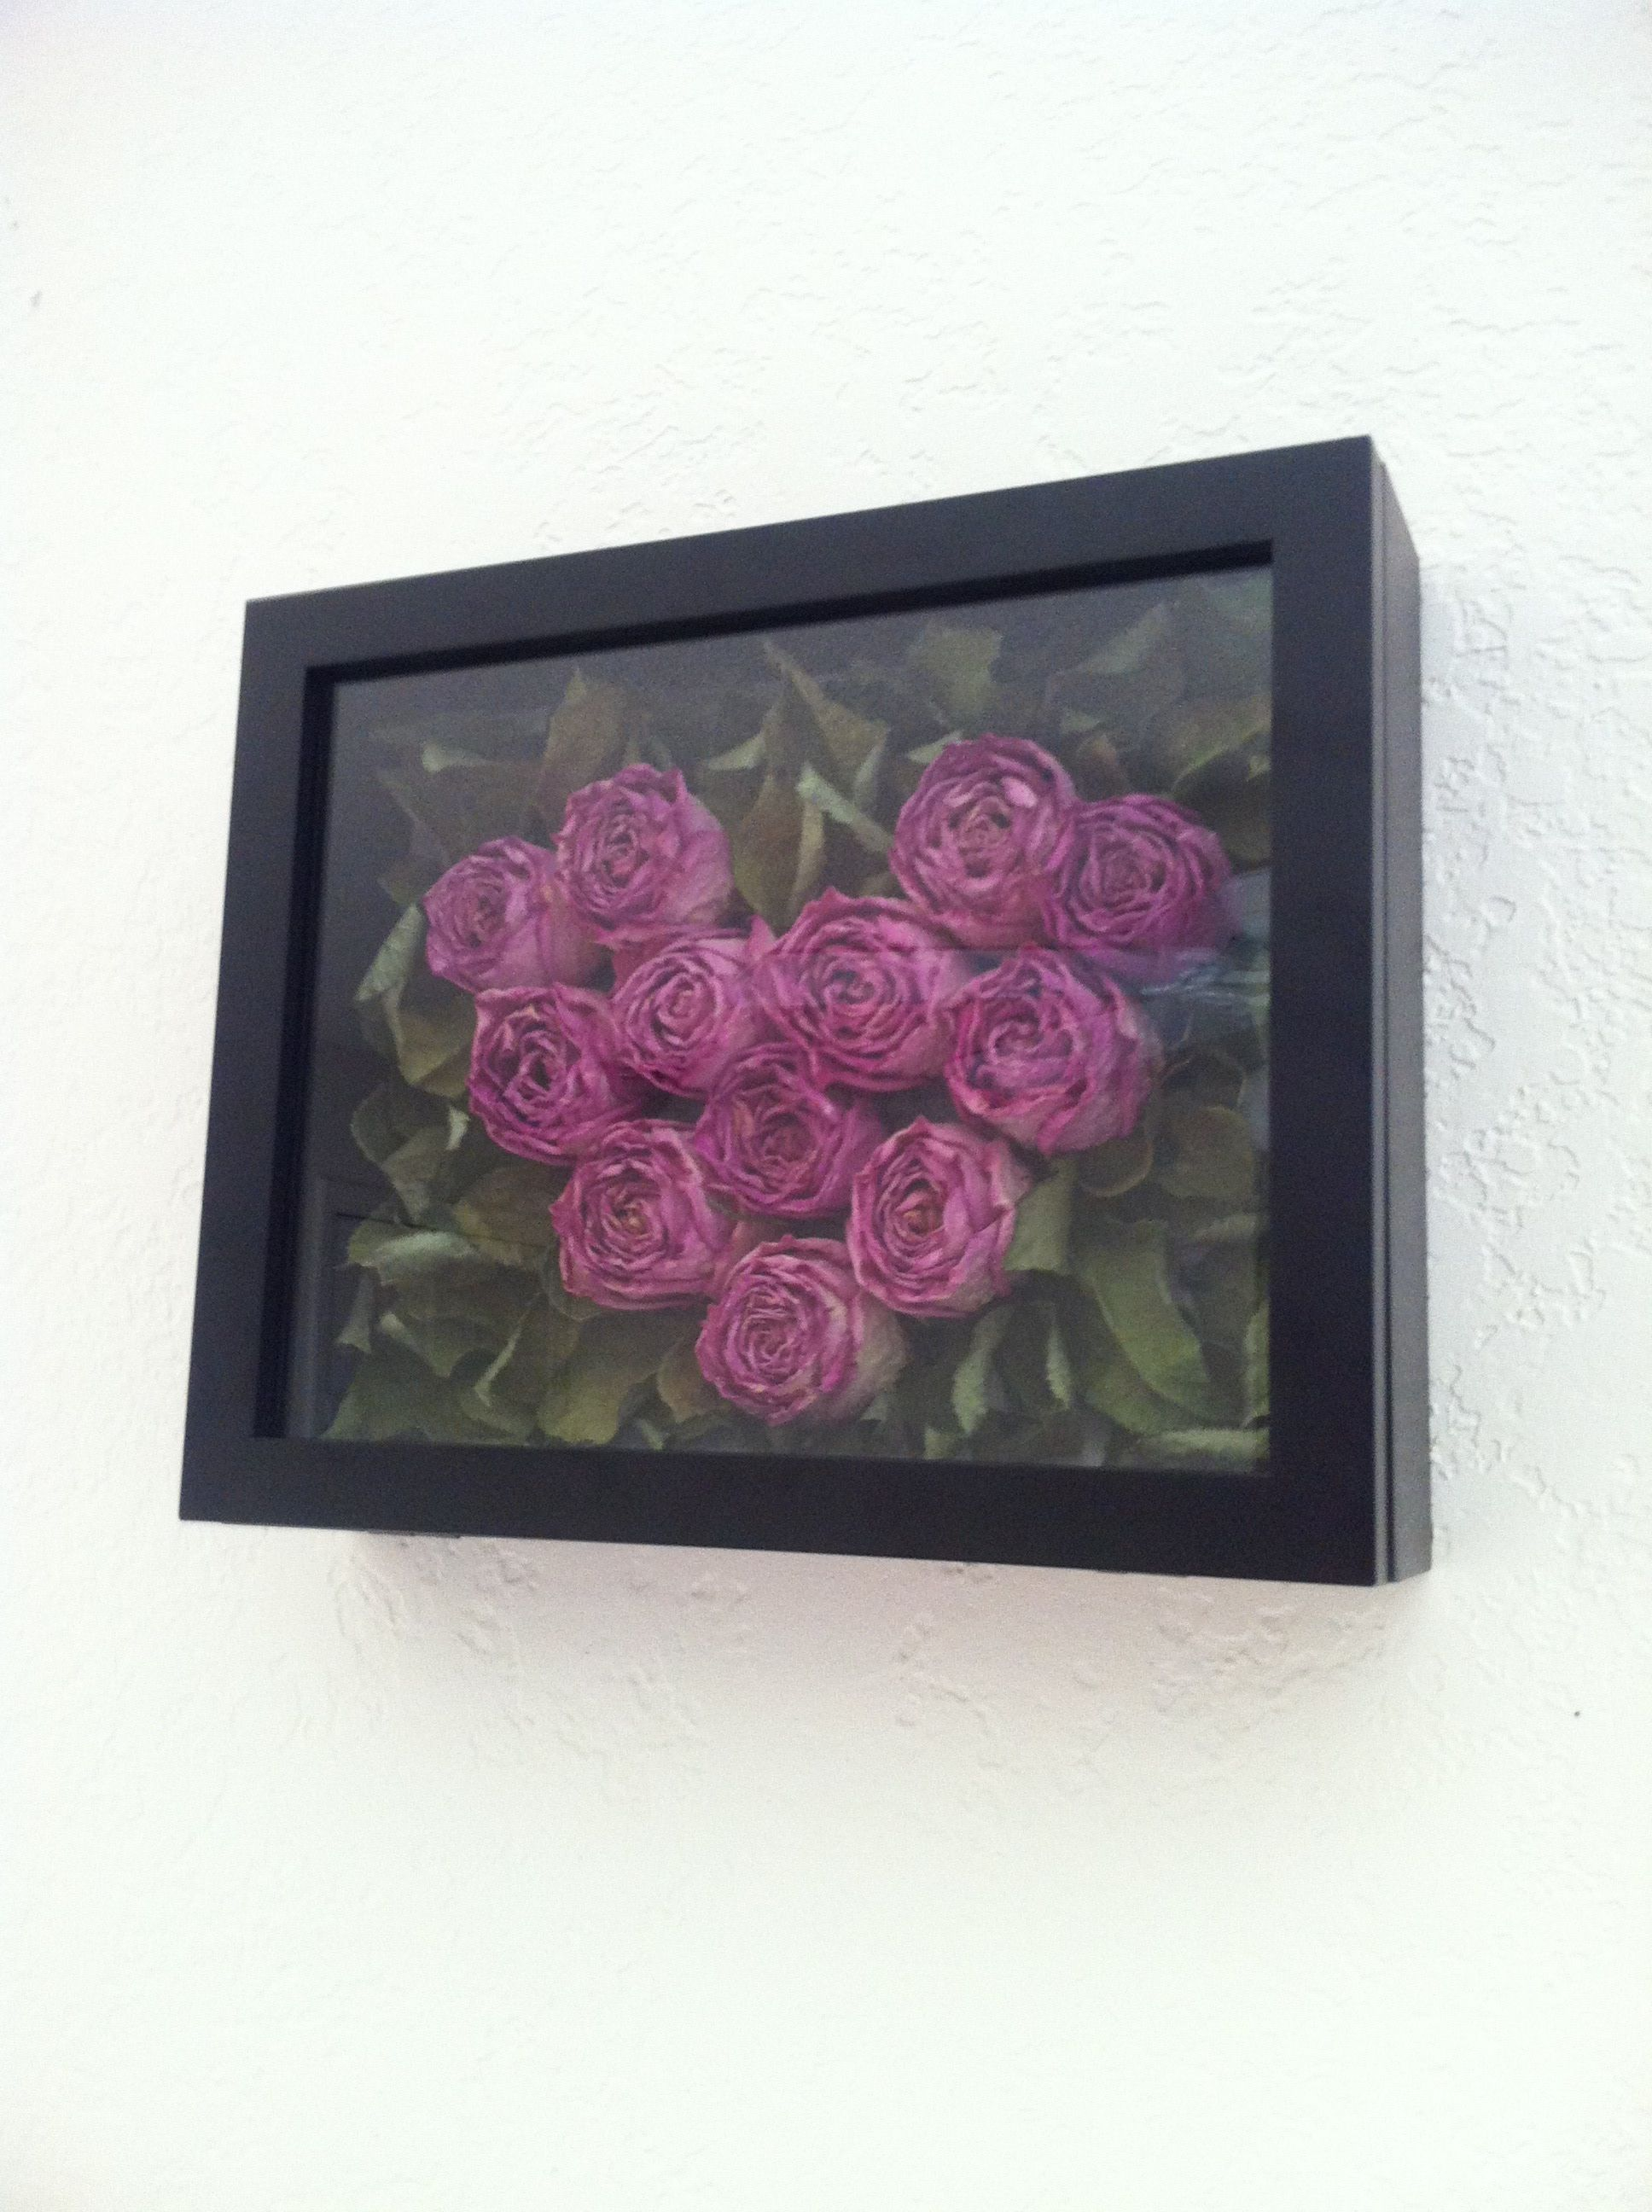 Alternative To Rose Garden: Great Alternative To Keep A Special Bouquet For Memories